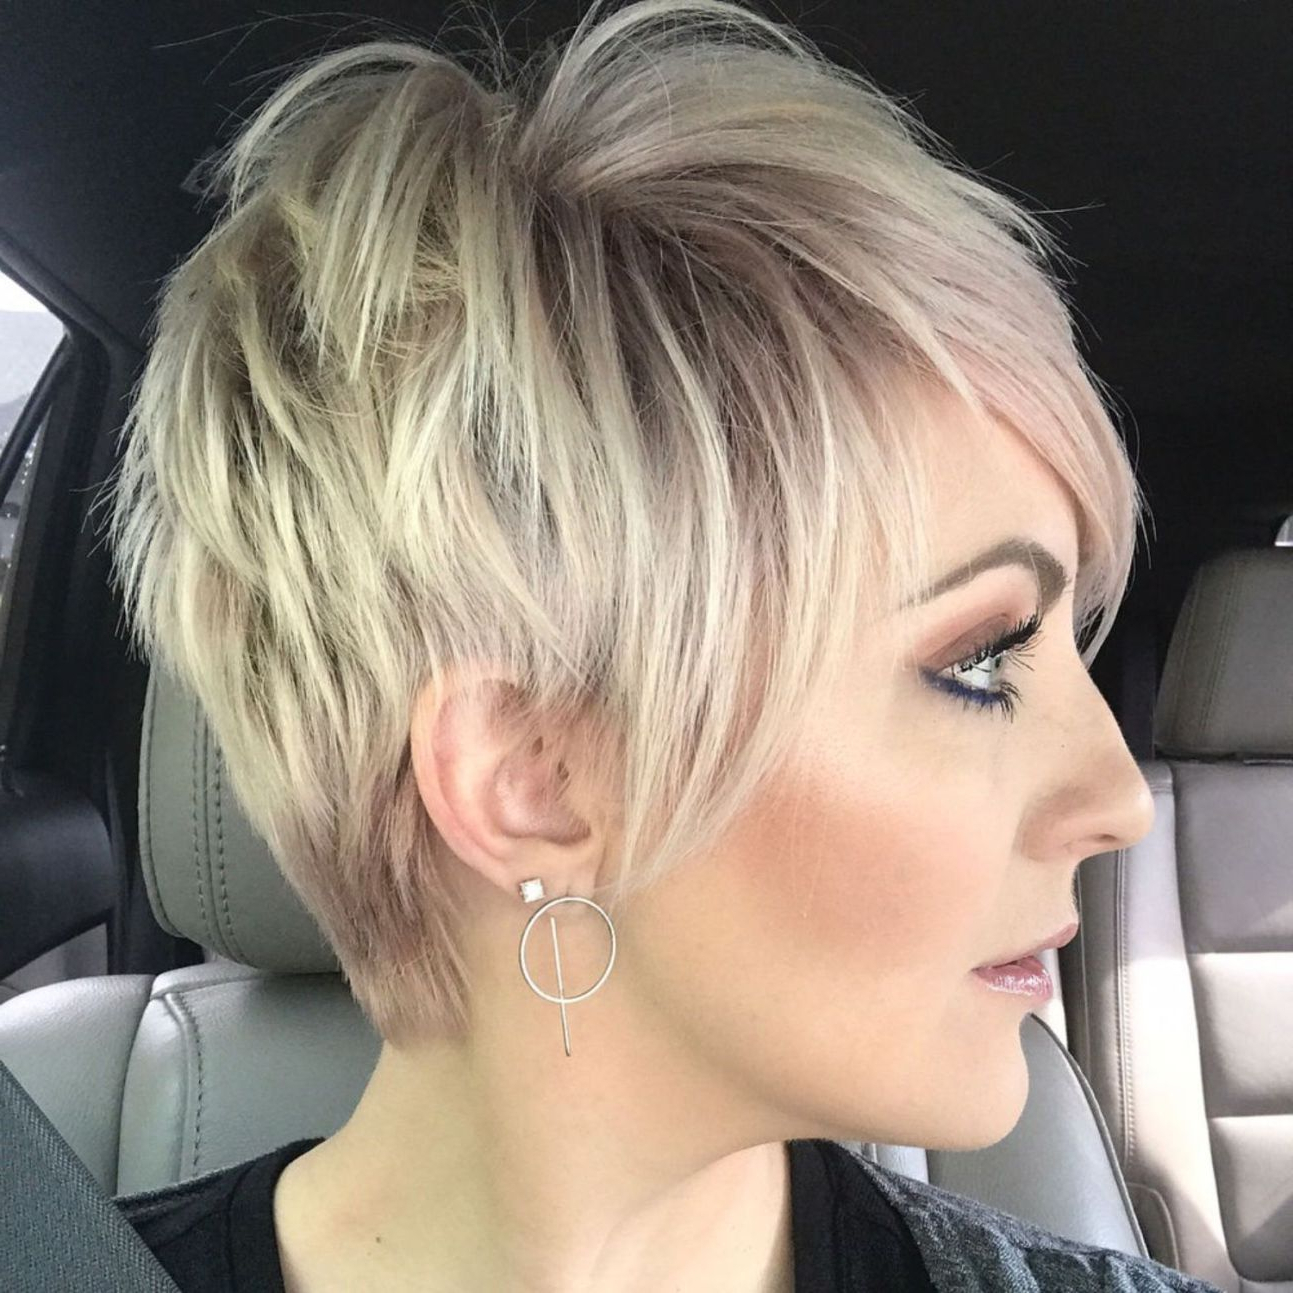 Pin On Hair Styles With Fashionable Short Shaggy Pixie Hairstyles (View 10 of 20)